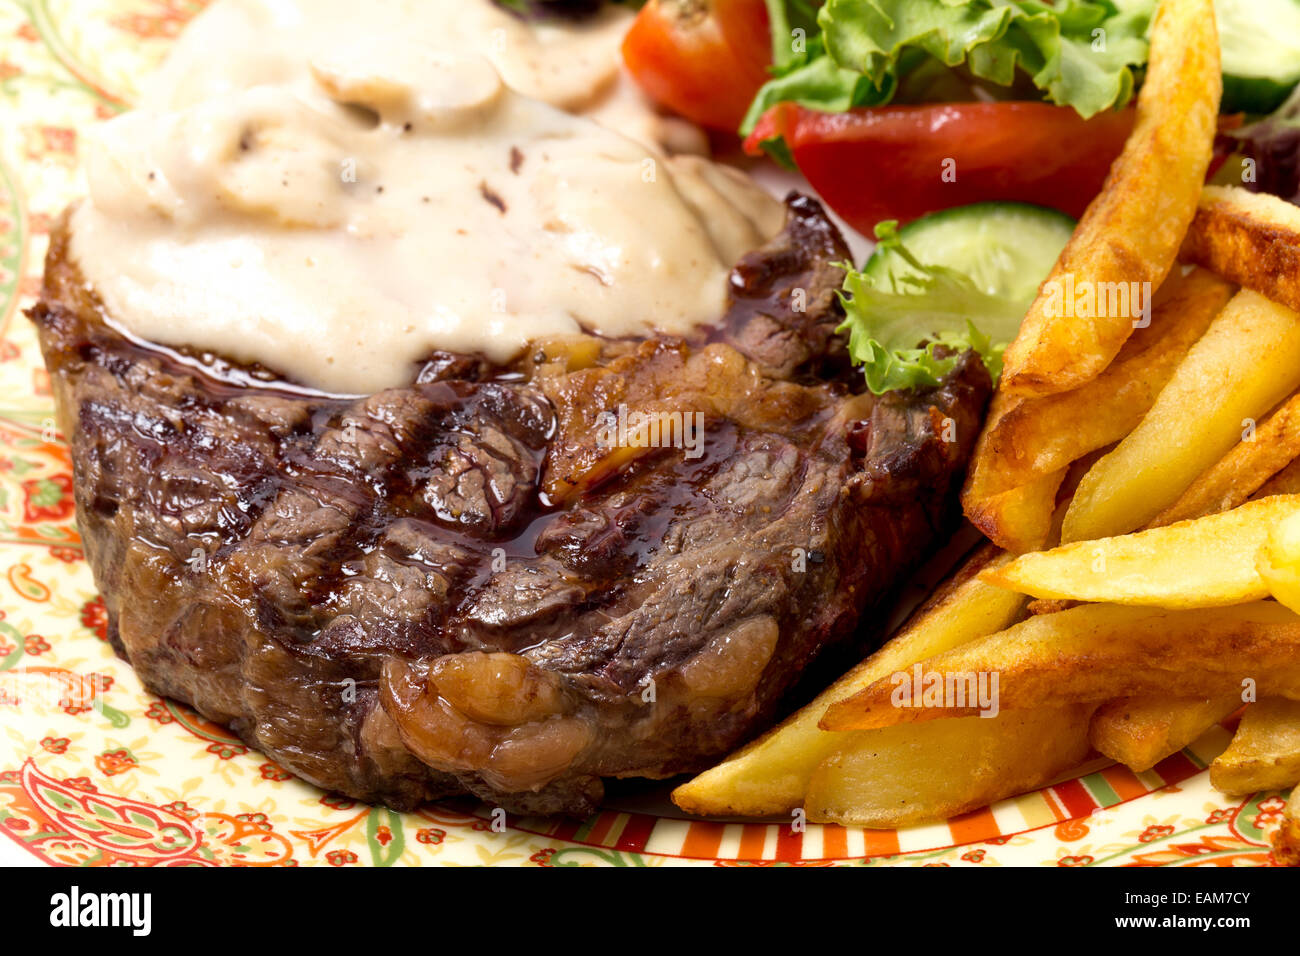 Closeup of grilled rib-eye beef steak served with mushroom sauce, salad and potato chips. - Stock Image